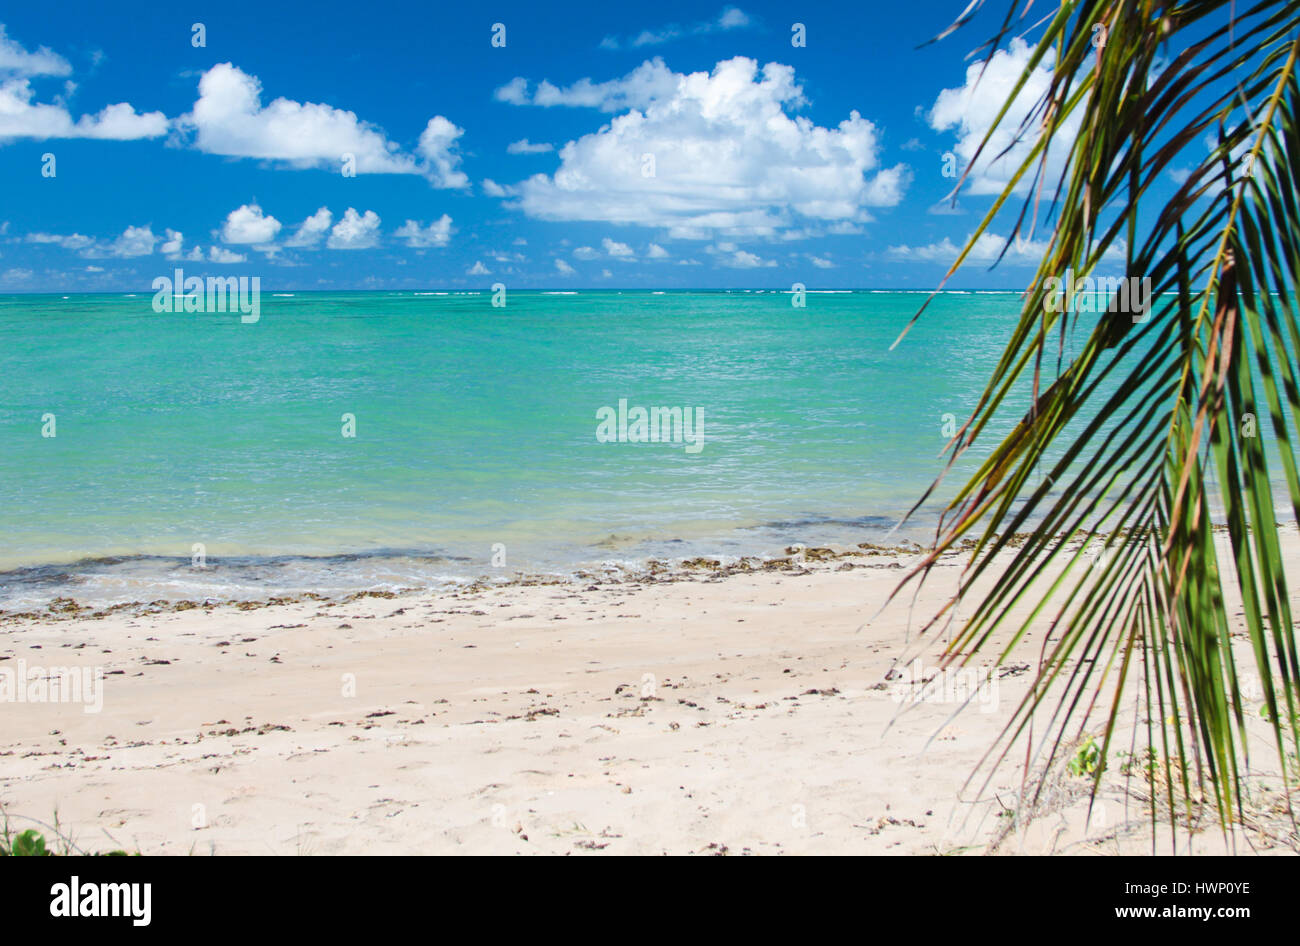 Beach Vacations: Turquoise sea of Patacho Beach, Alagoas, Brazil, considered one of the most beautiful beaches in Brazil. Stock Photo